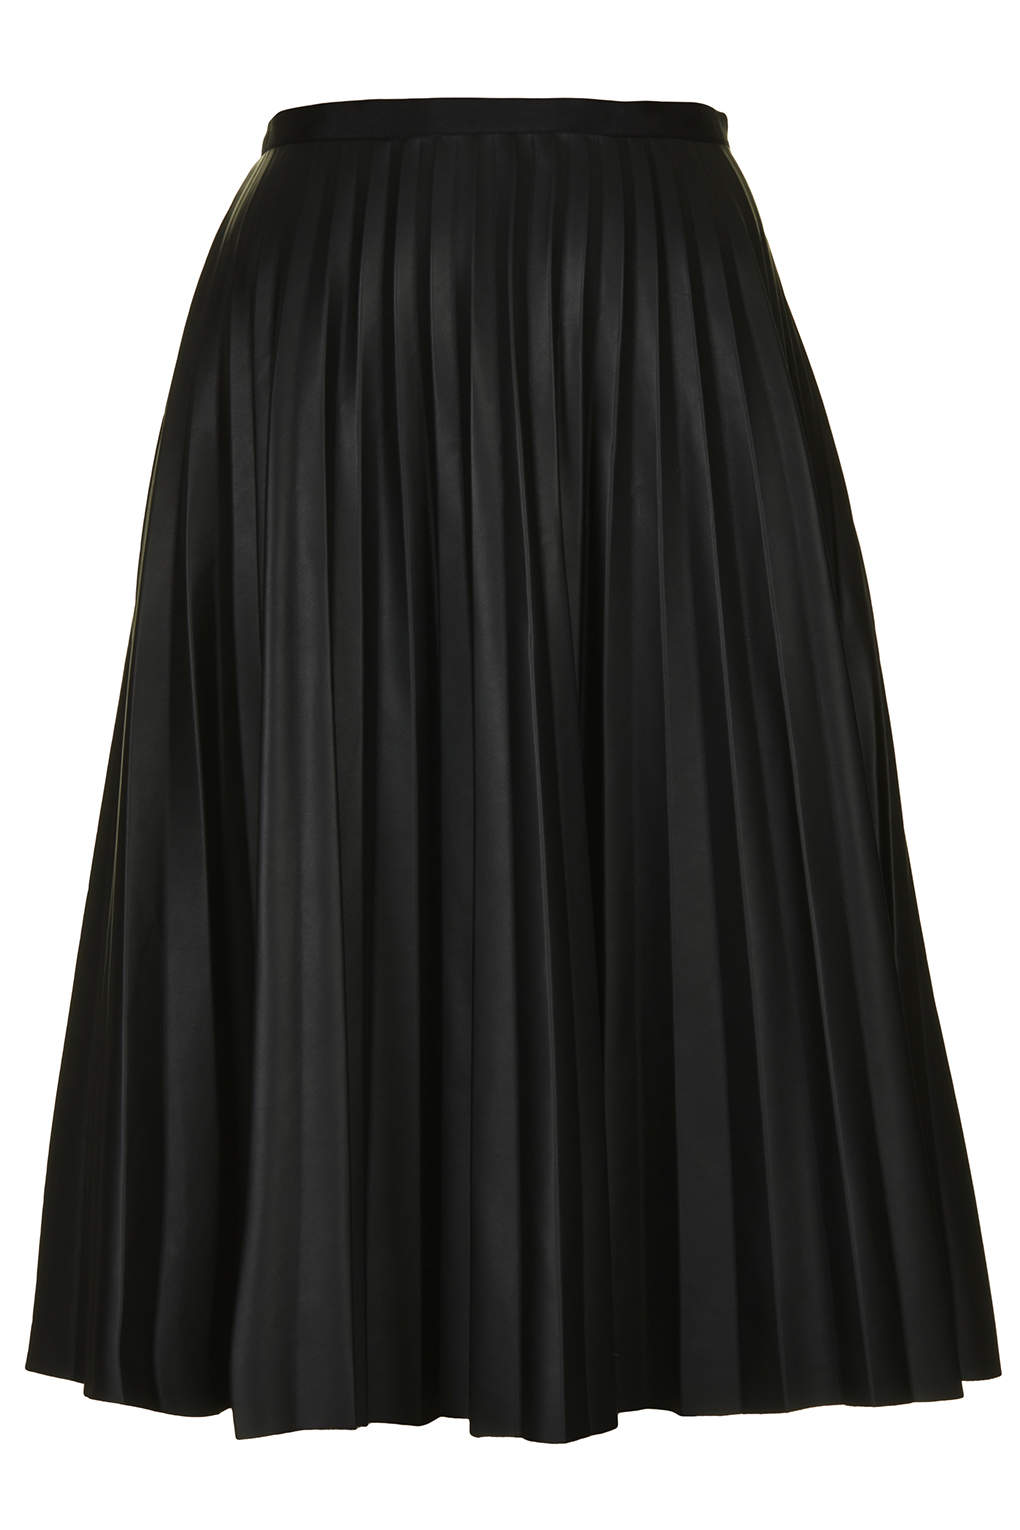 Pu black pleated midi skirt